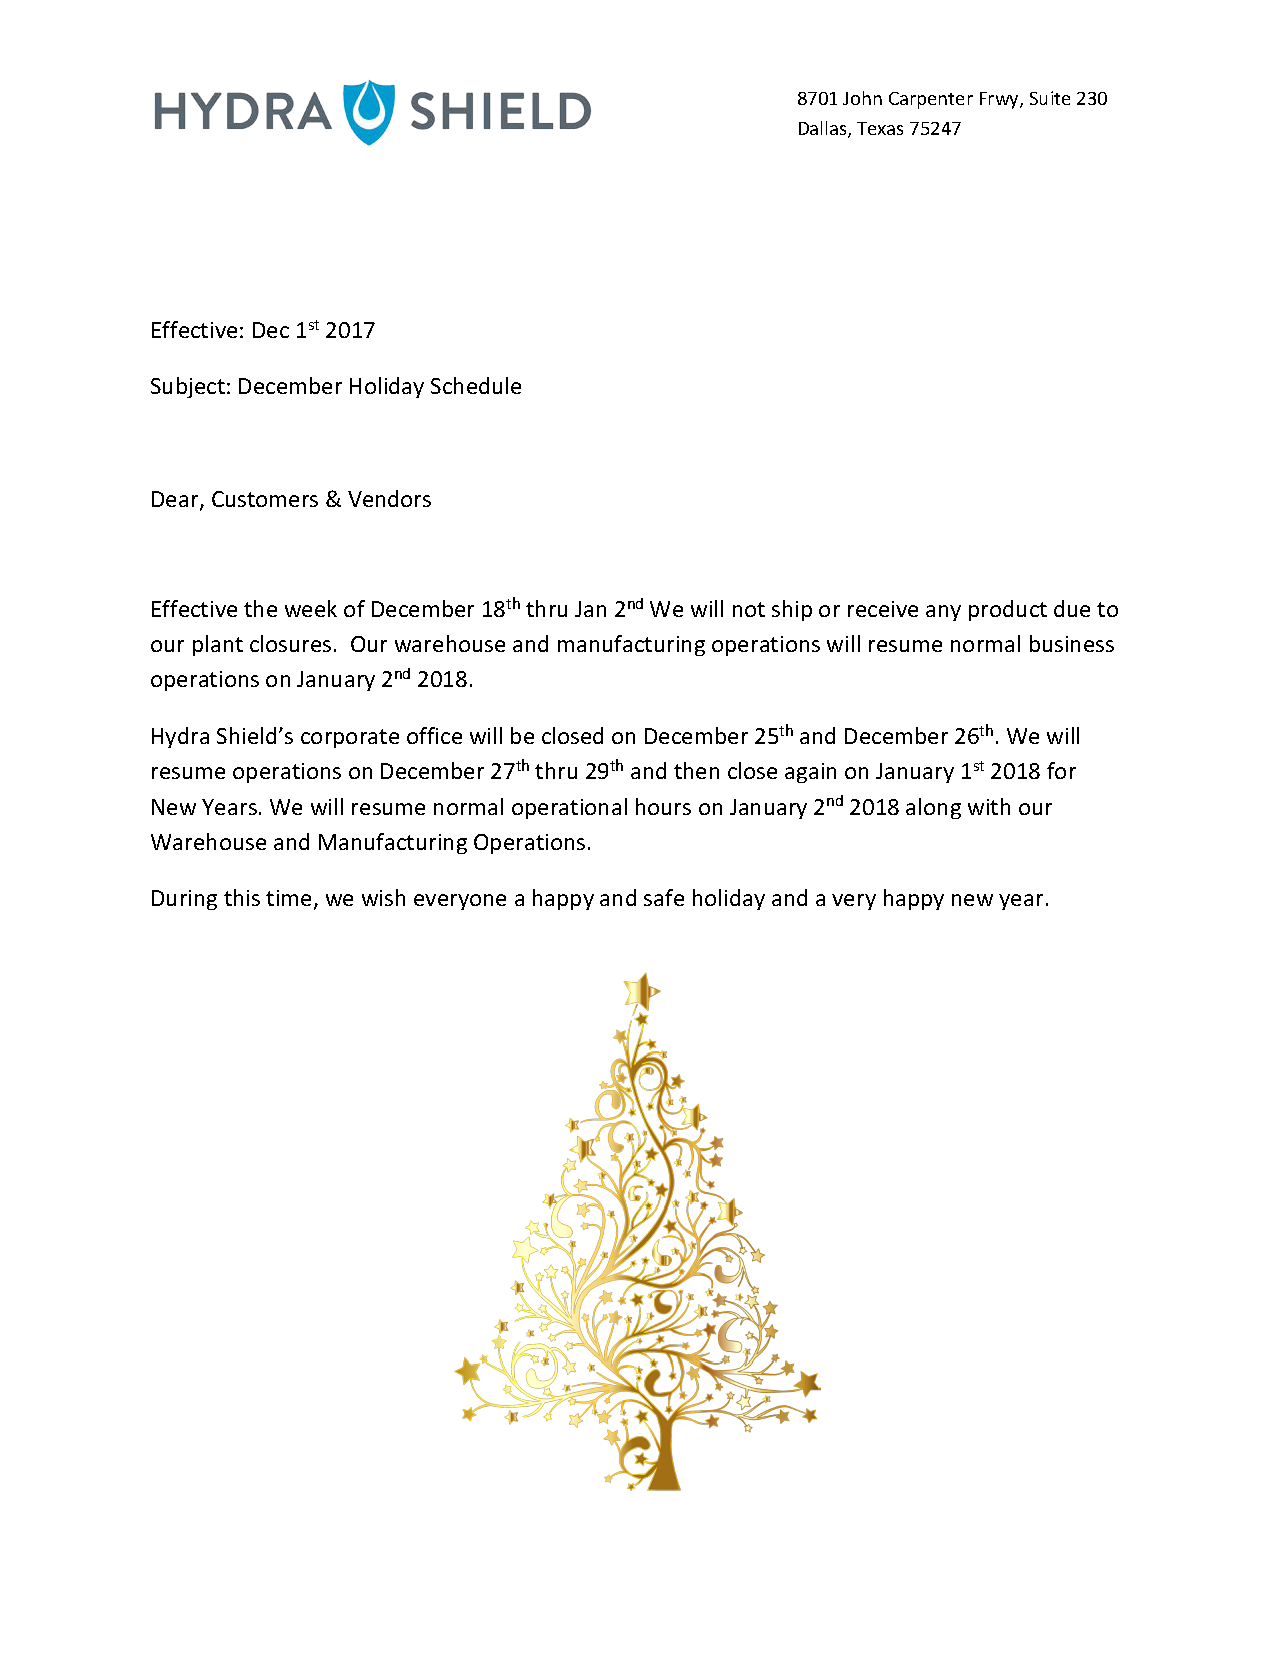 new year letter luxury new year letter cover letter examples 28235